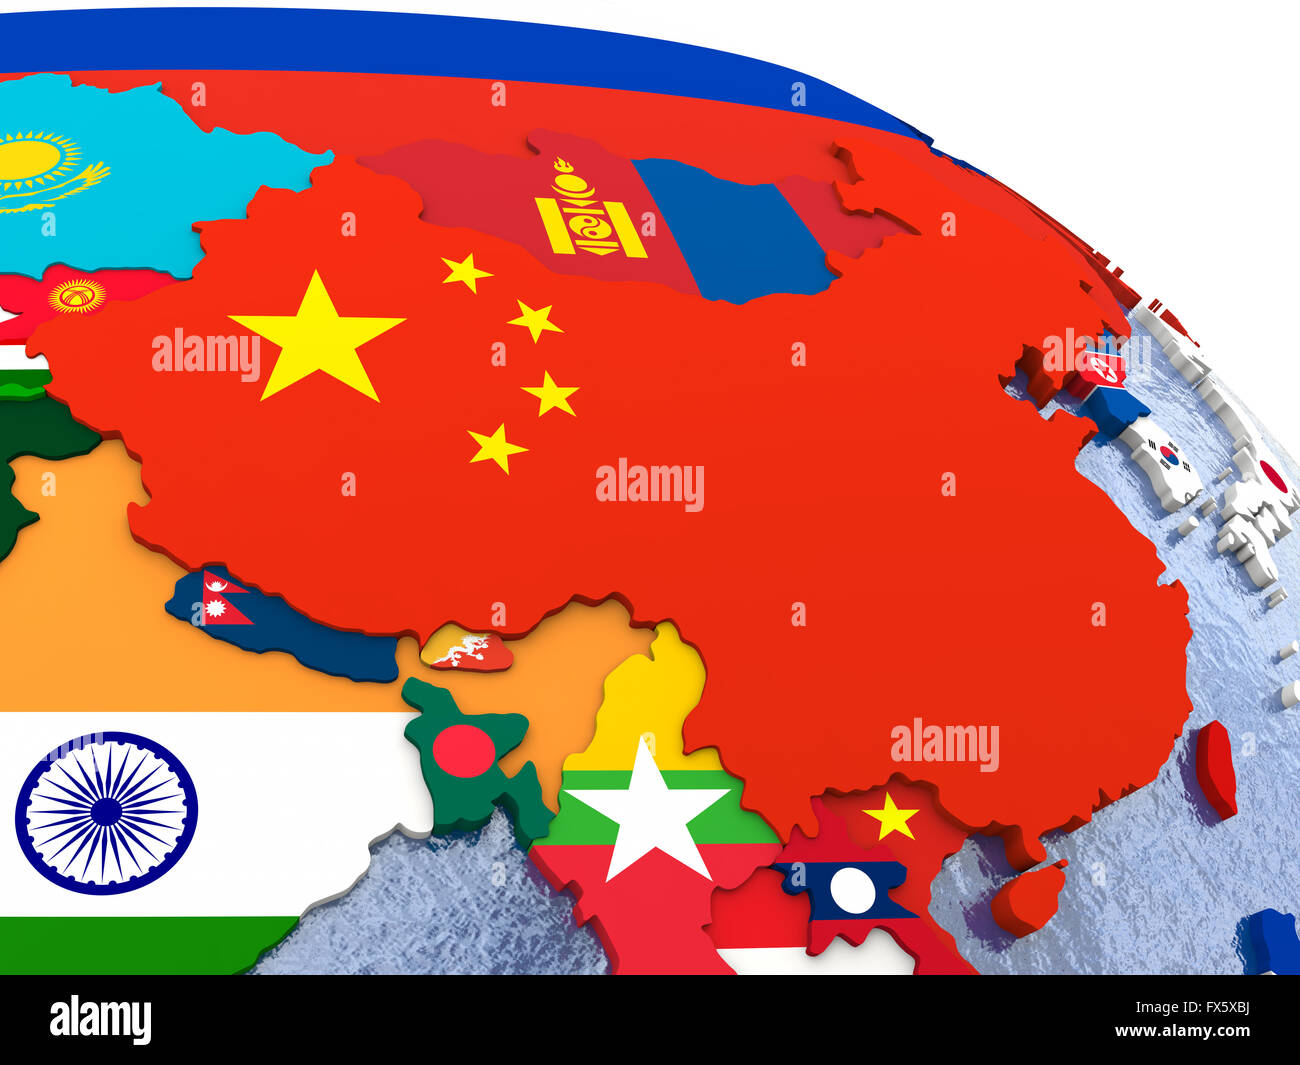 Map Of China Region.China Political Map Stock Photos China Political Map Stock Images